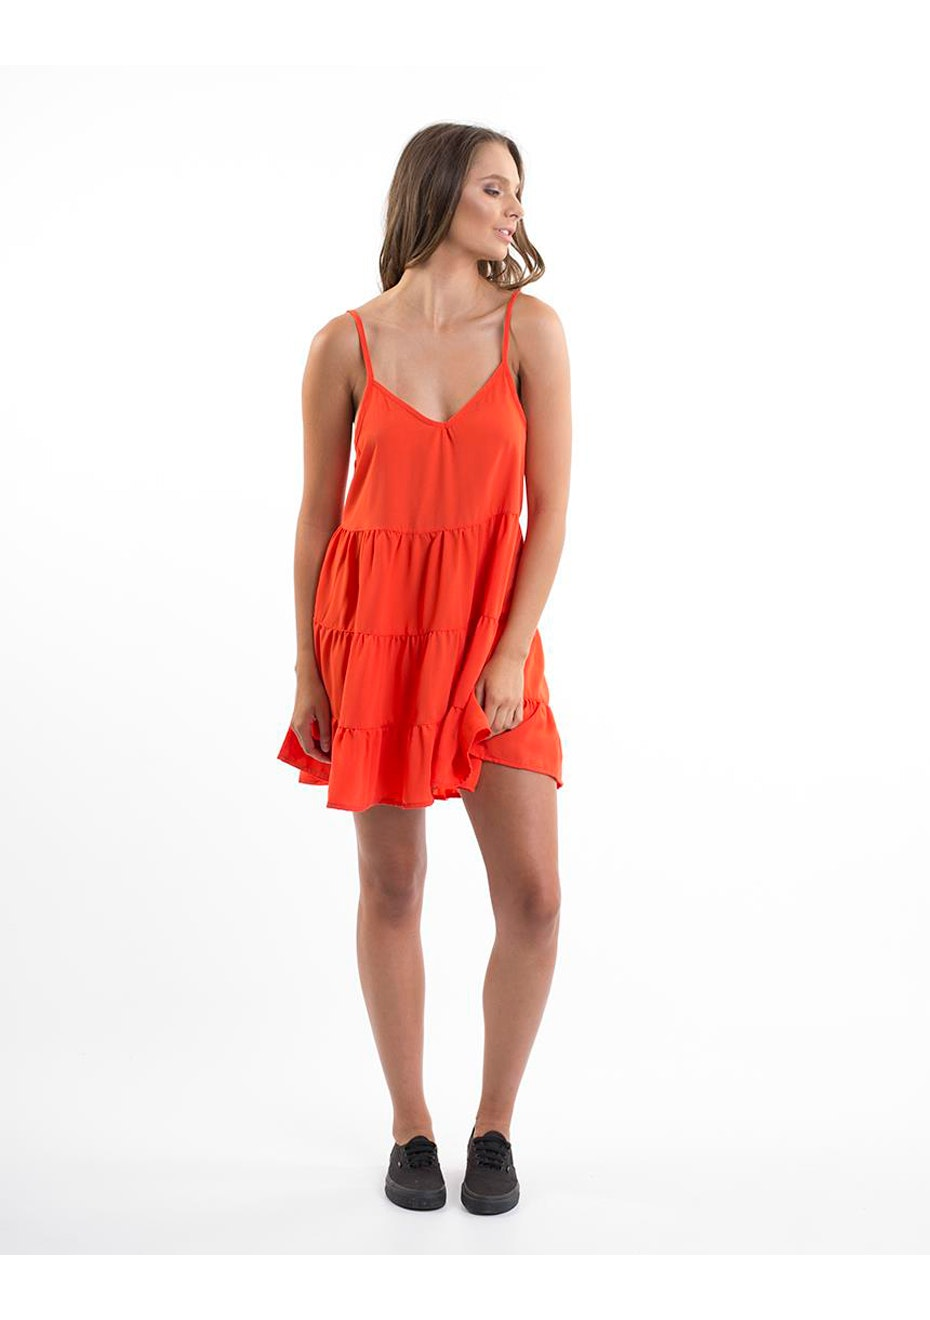 All About Eve - ALLURE DRESS - ORANGE